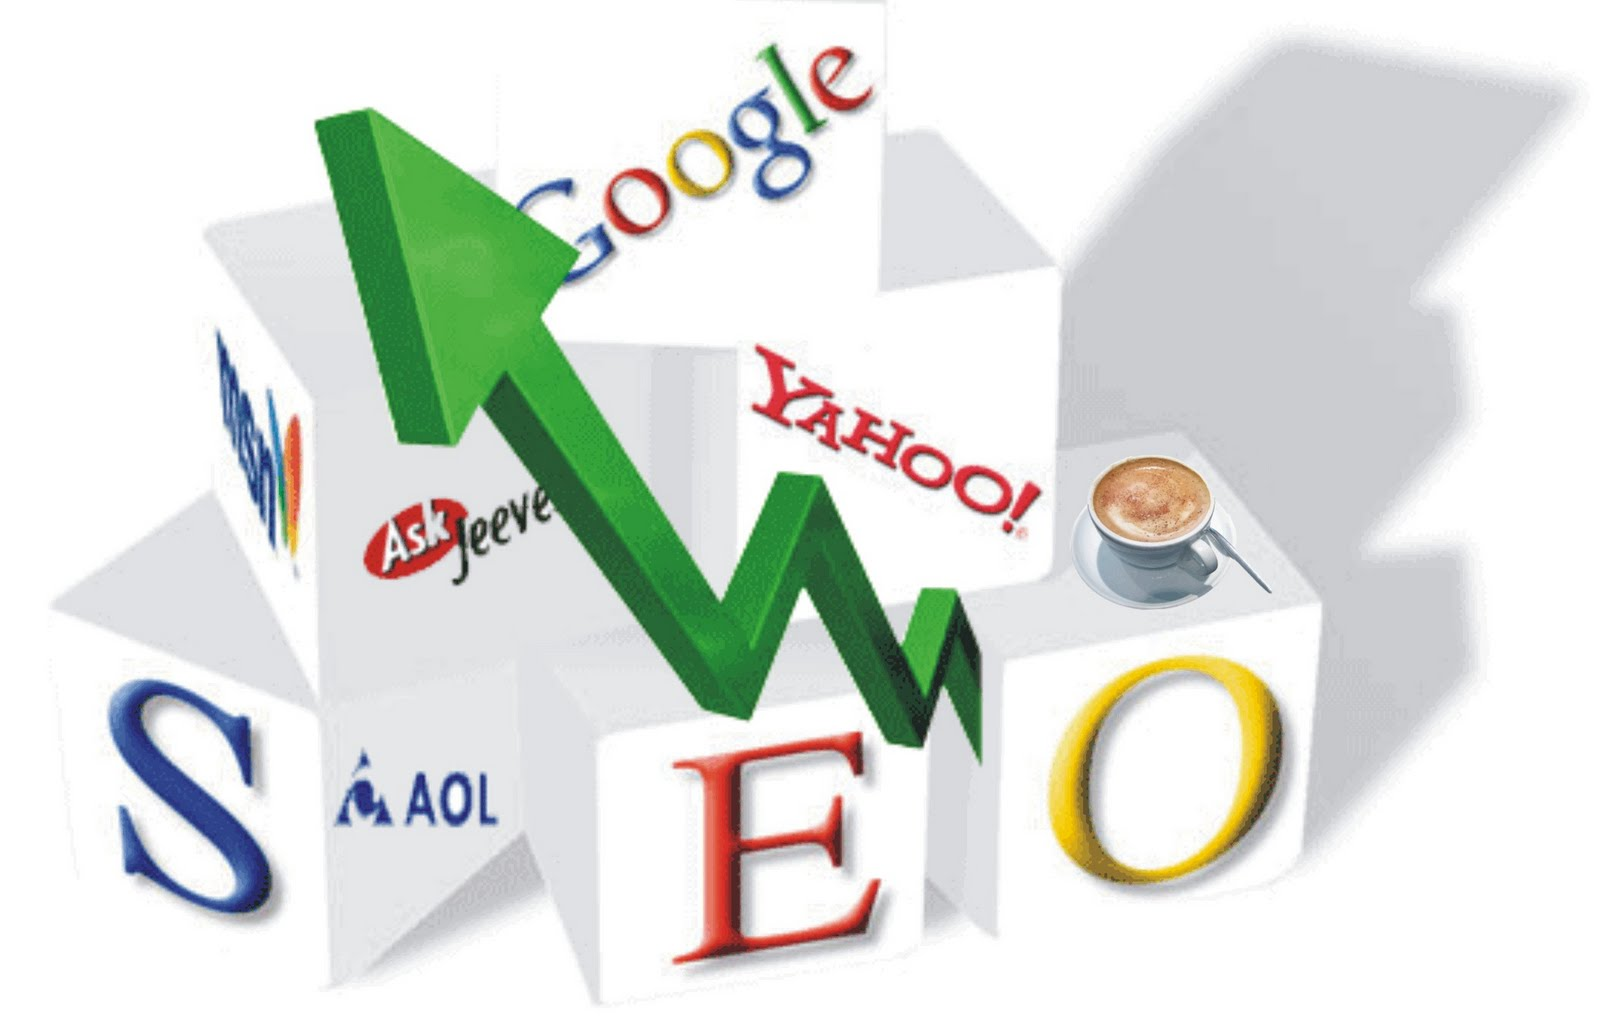 i can do any type of SEO work.